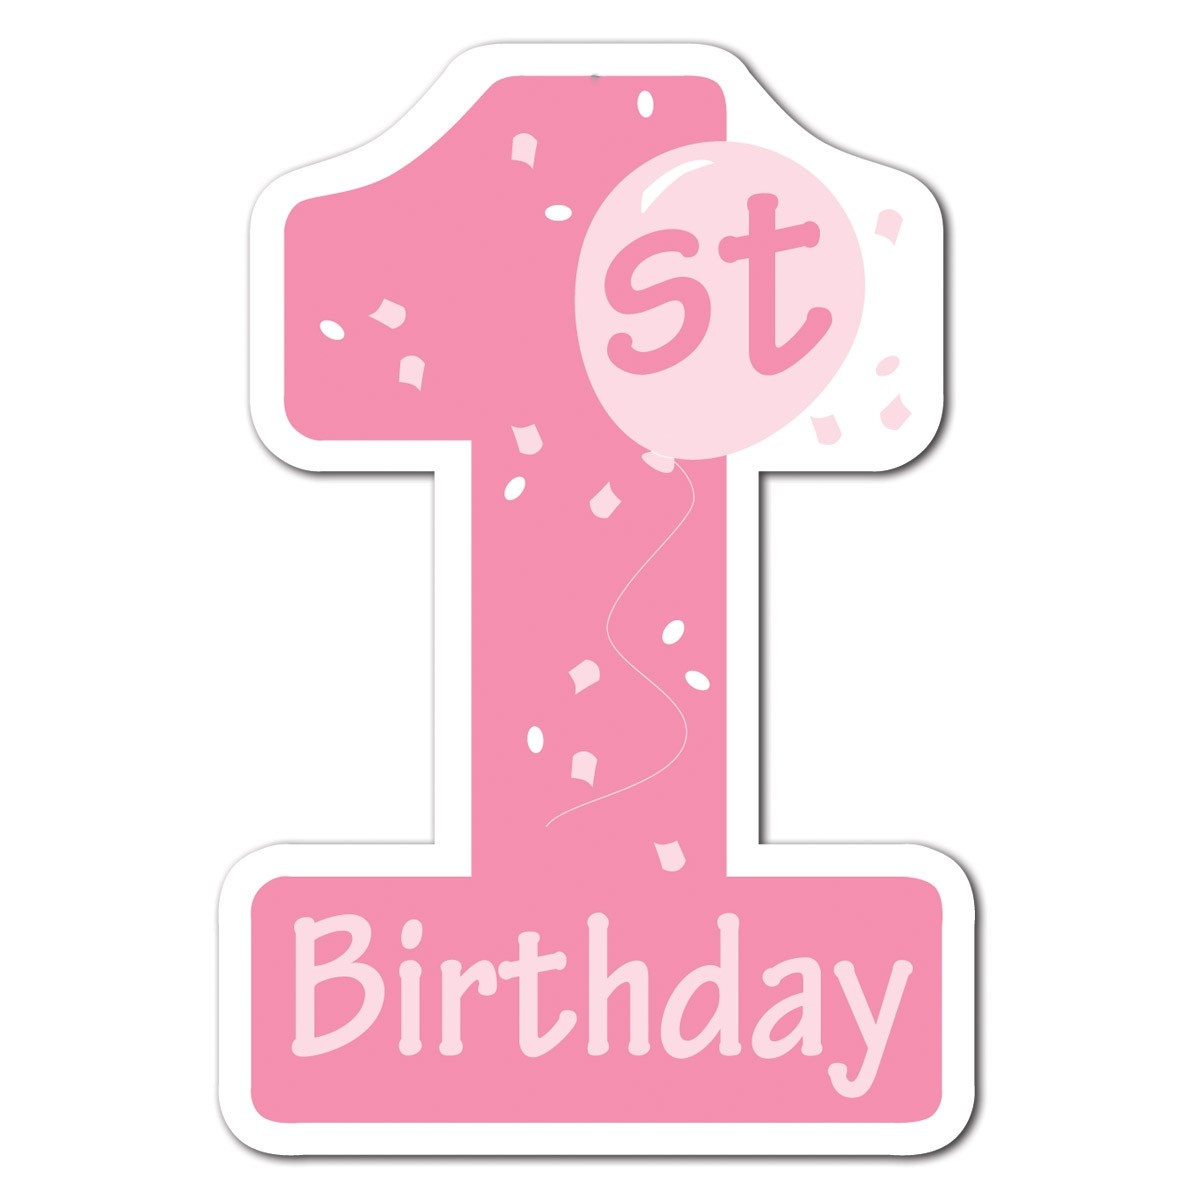 1st Birthday Clip Art – Clipart Free Download freeuse stock